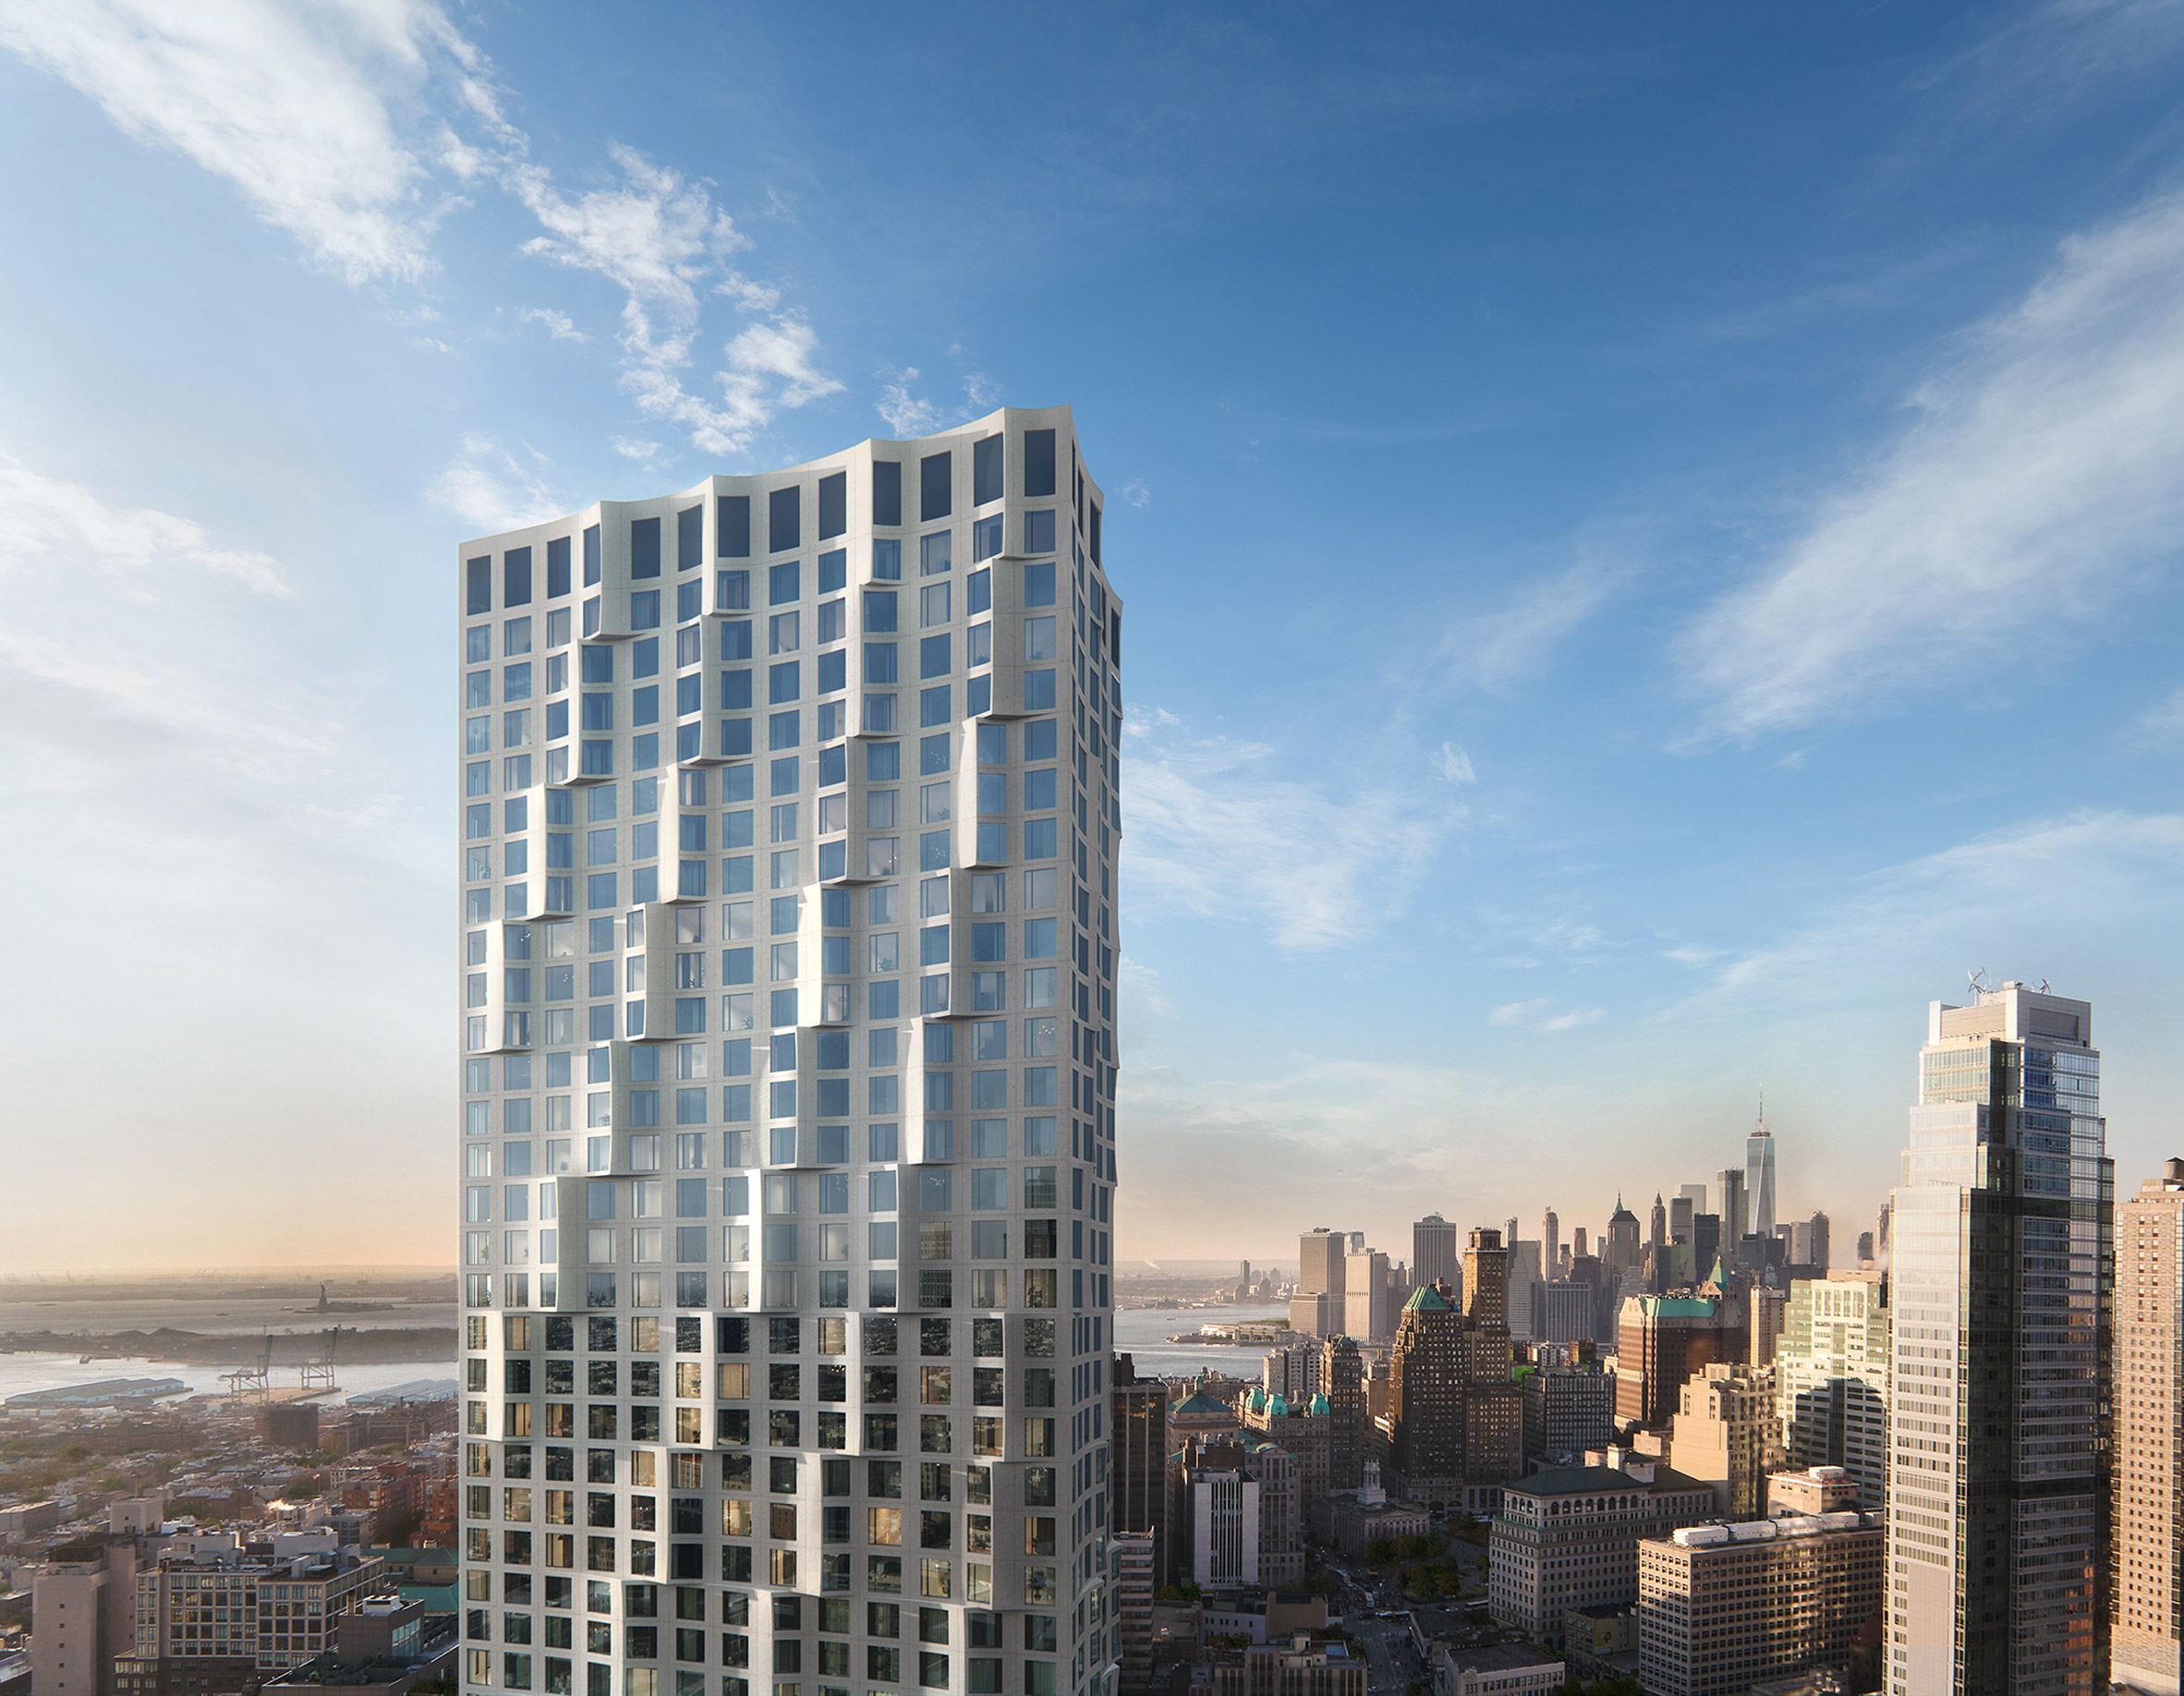 Studio Gang unveils scalloped concrete condo tower for Brooklyn